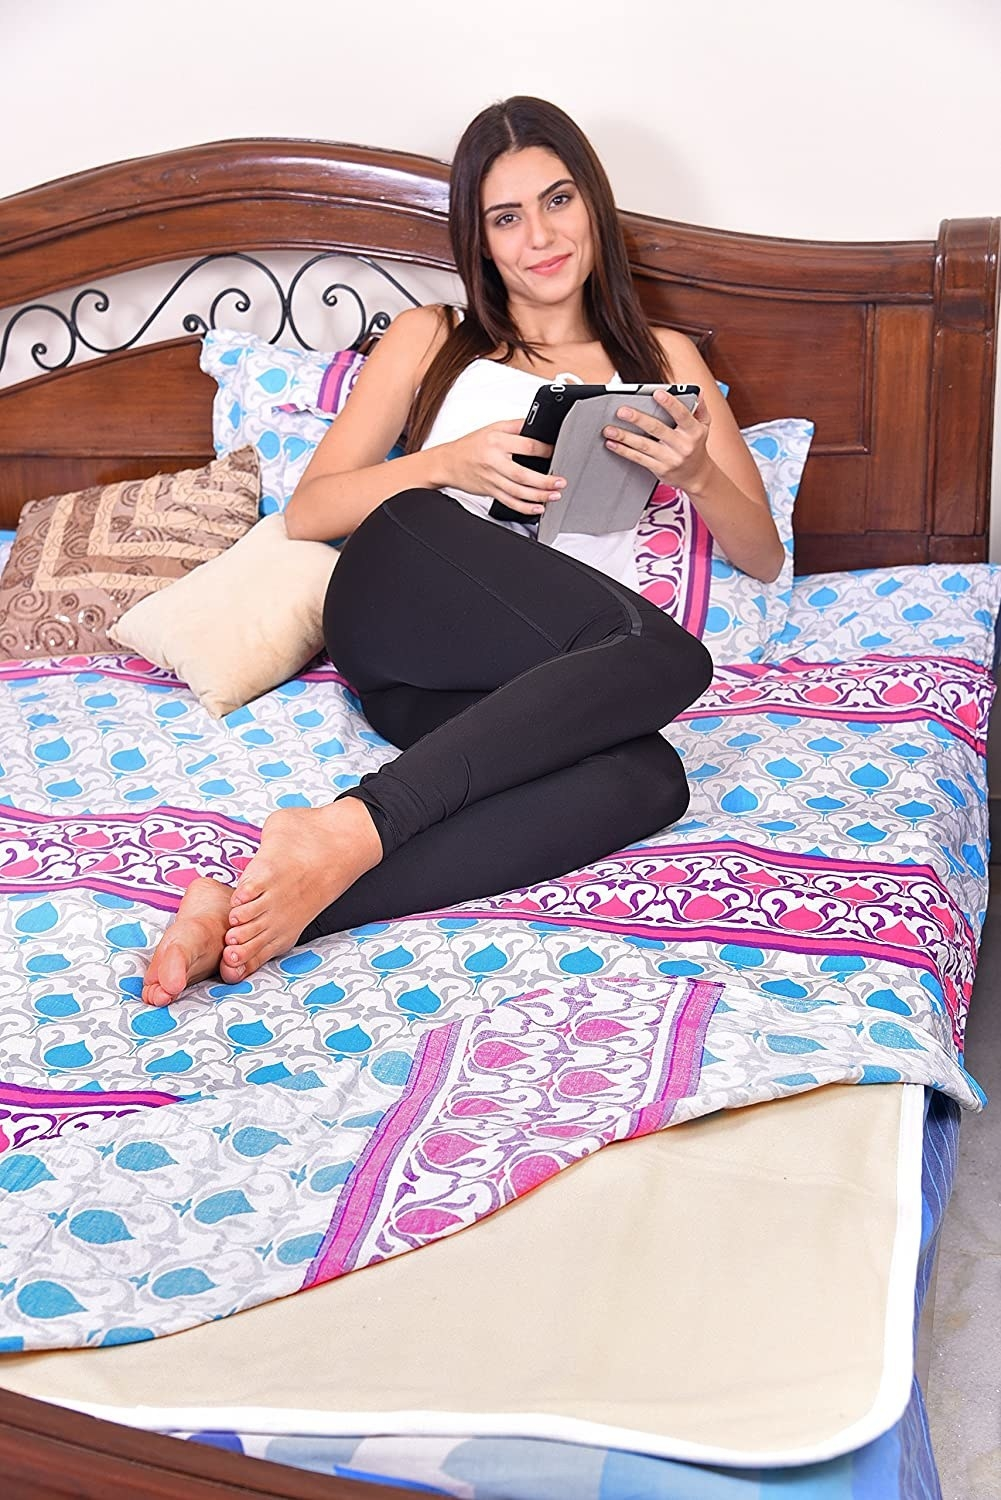 A woman using the bed warmer.